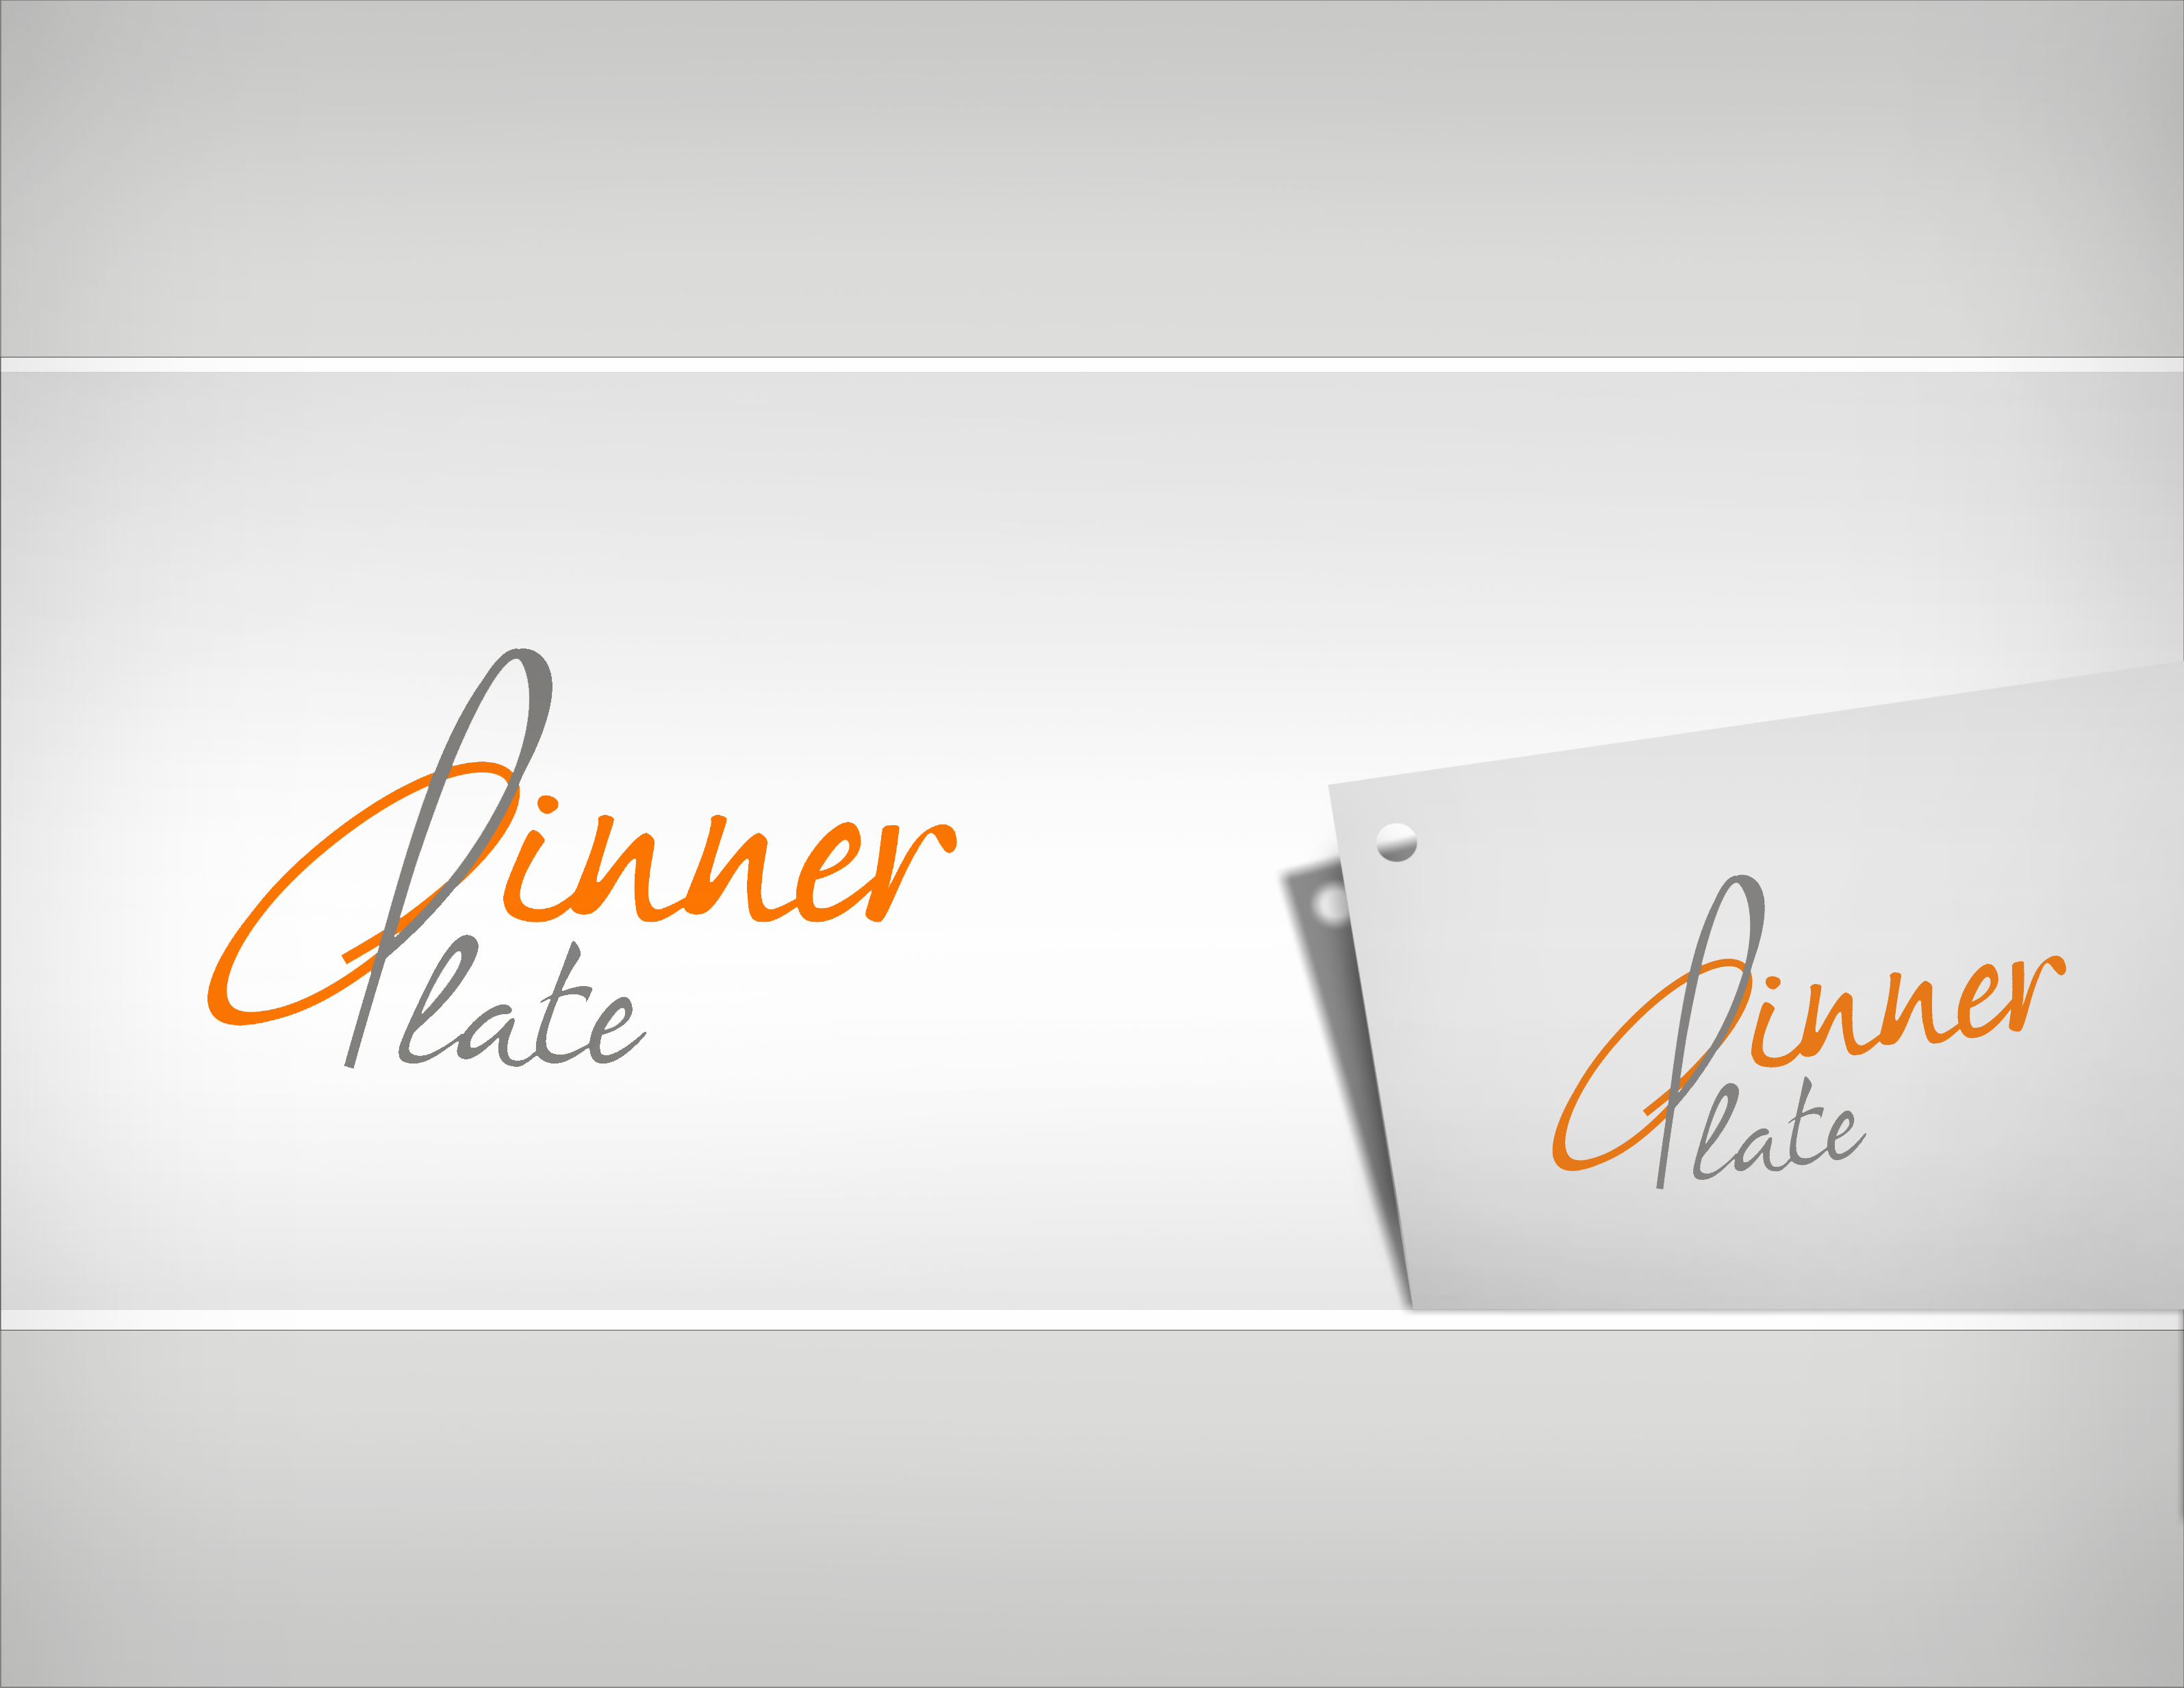 Logo Design by Sandip Kumar - Entry No. 100 in the Logo Design Contest Imaginative Logo Design for Dinner Plate.